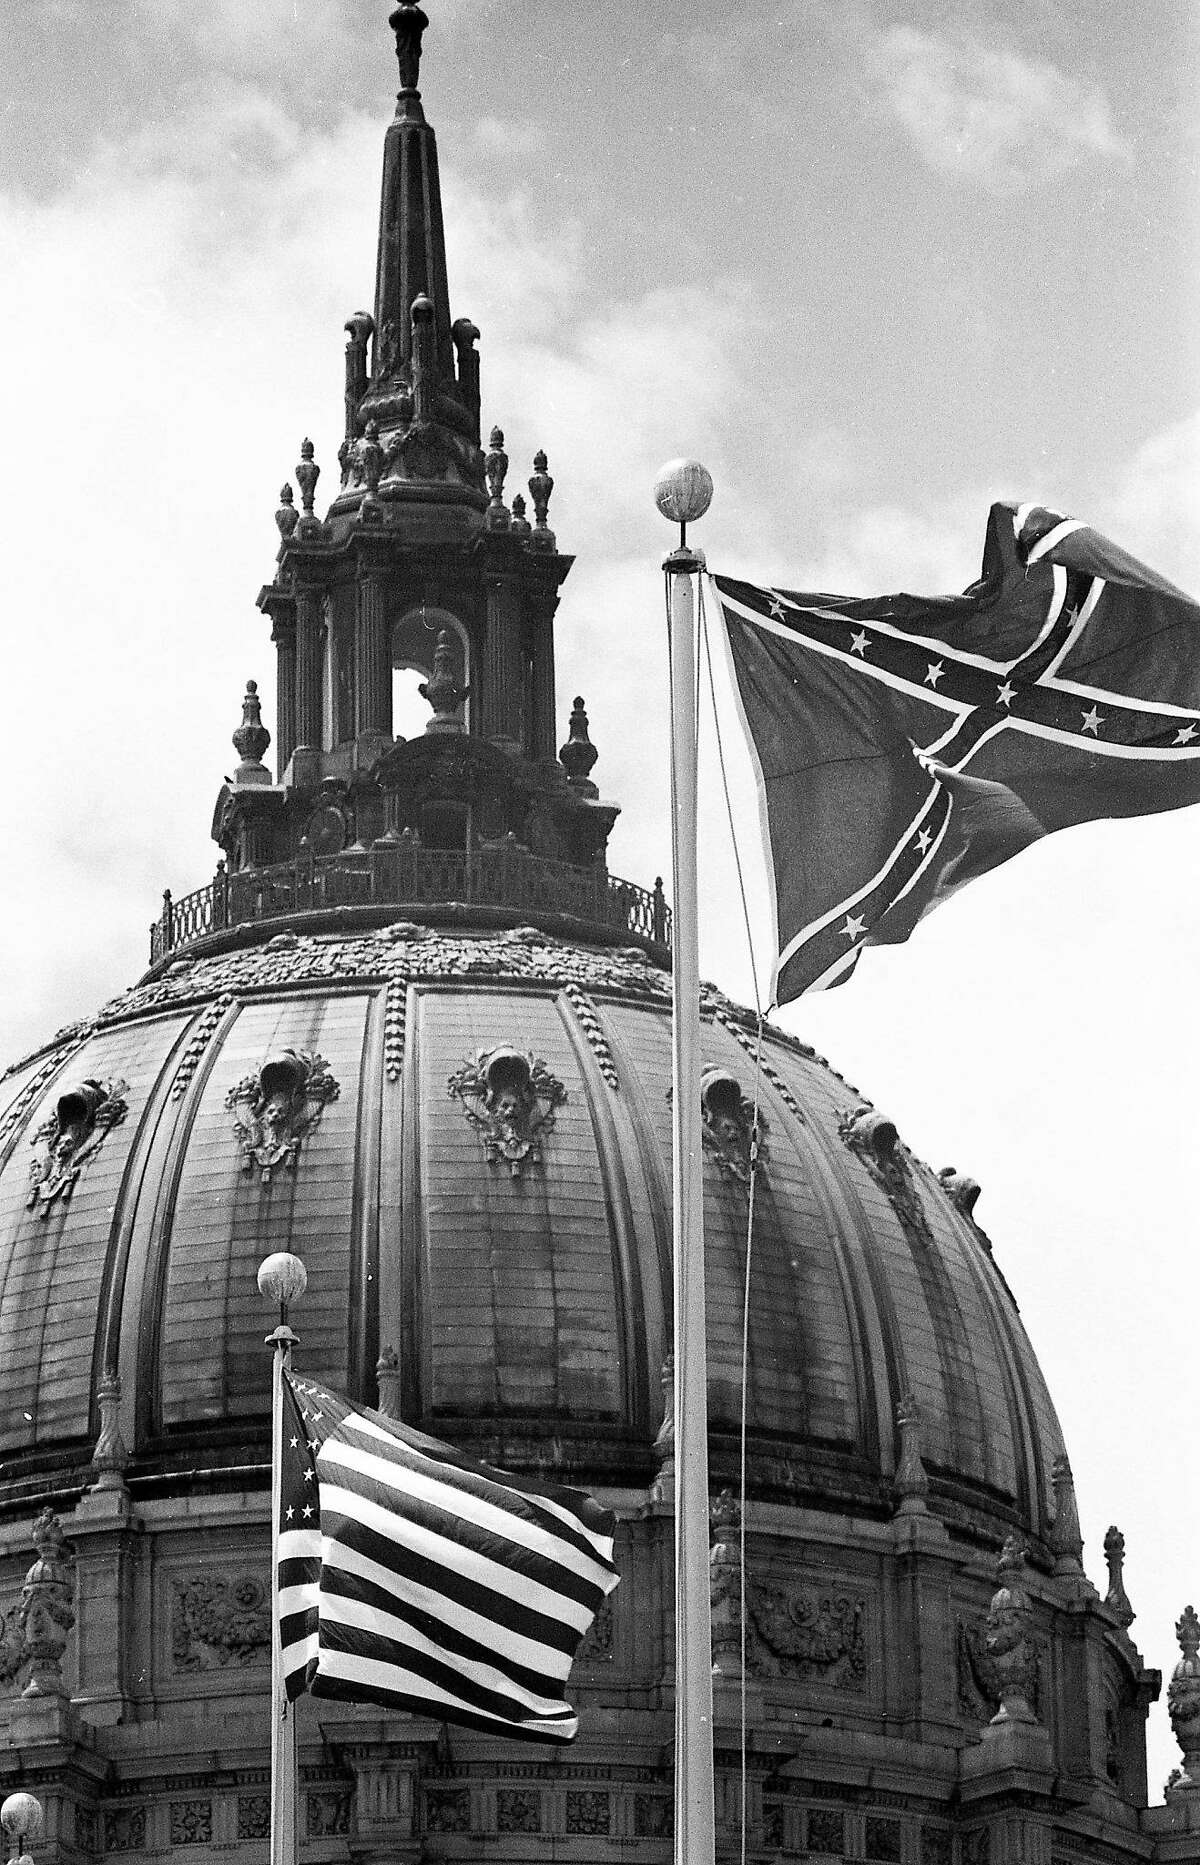 June 16, 1964: A confederate flag flies among a group of flags in Civic Center Flags in front of City Hall. The flag remained after initial protests, but was eventually removed.